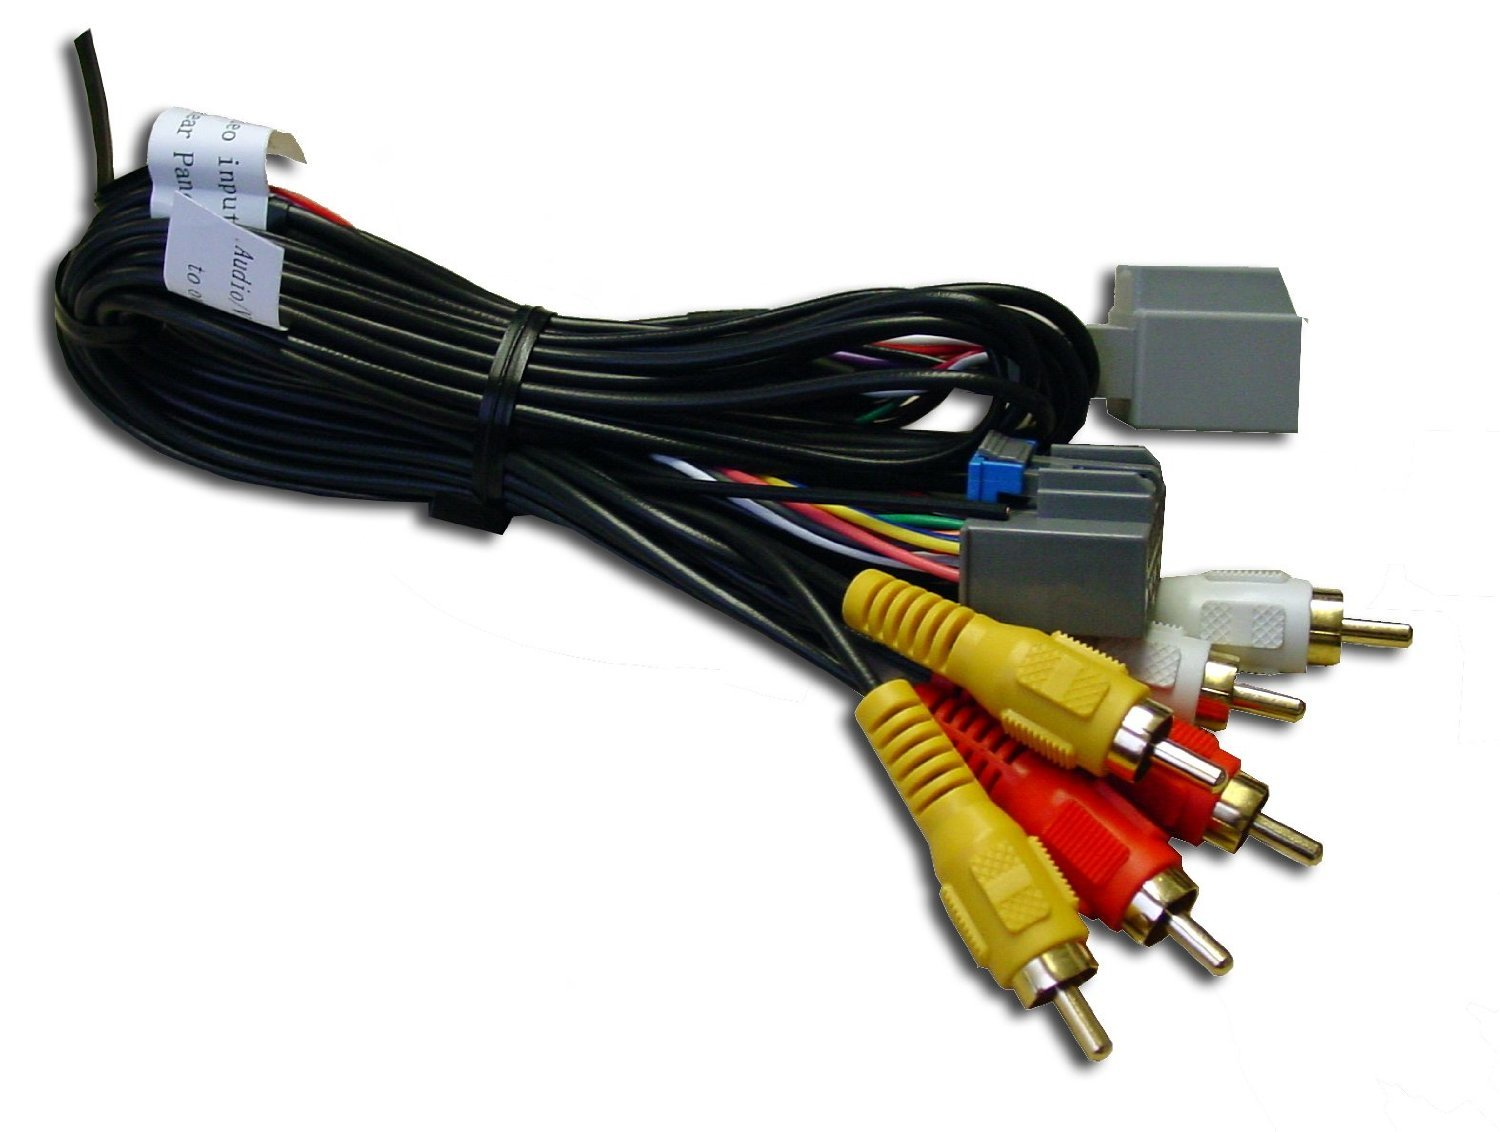 Pac Gmrvd Overhead Lcd Retention Cable For General Chevrolet Truck Wiring Harness Adapter Dvd Motors Vehicles With Rear Seat Entertainment Car Electronics